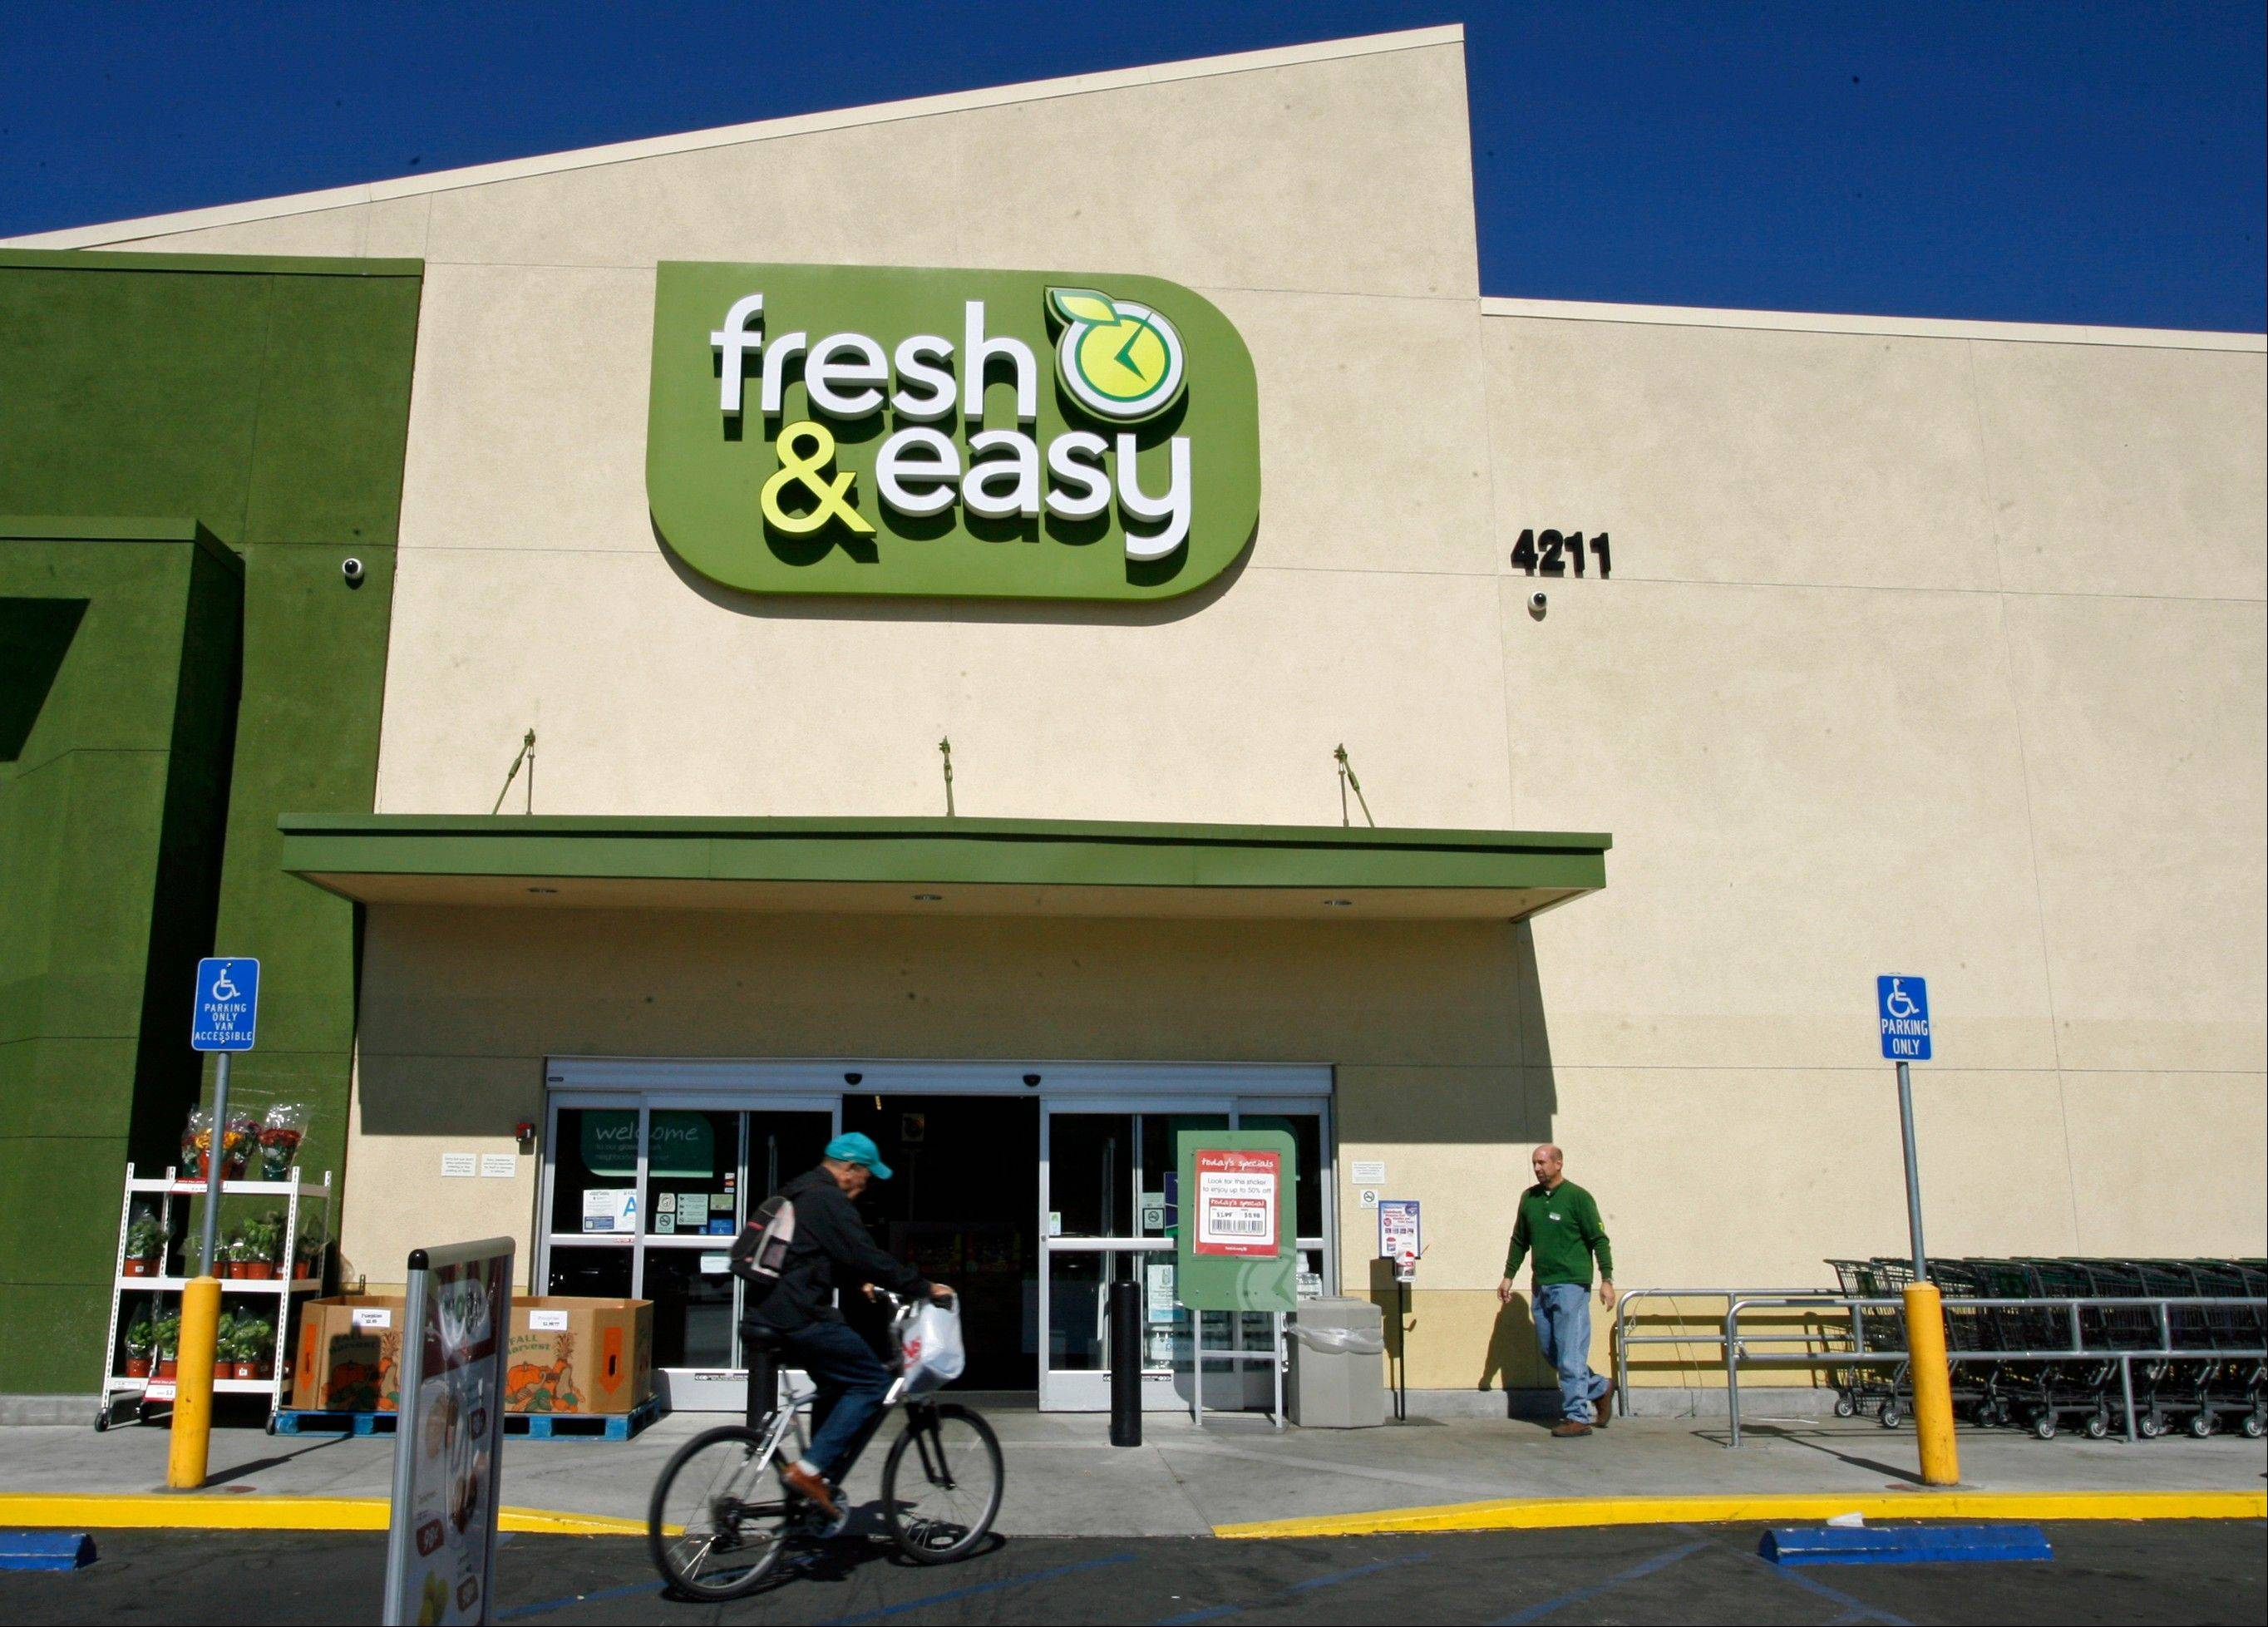 Tesco, Britain's biggest retailer, is reviewing options for its slow-growing U.S. venture, Fresh & Easy. The company also announced Wednesday that the chief executive of Fresh & Easy, Tim Mason, is leaving.